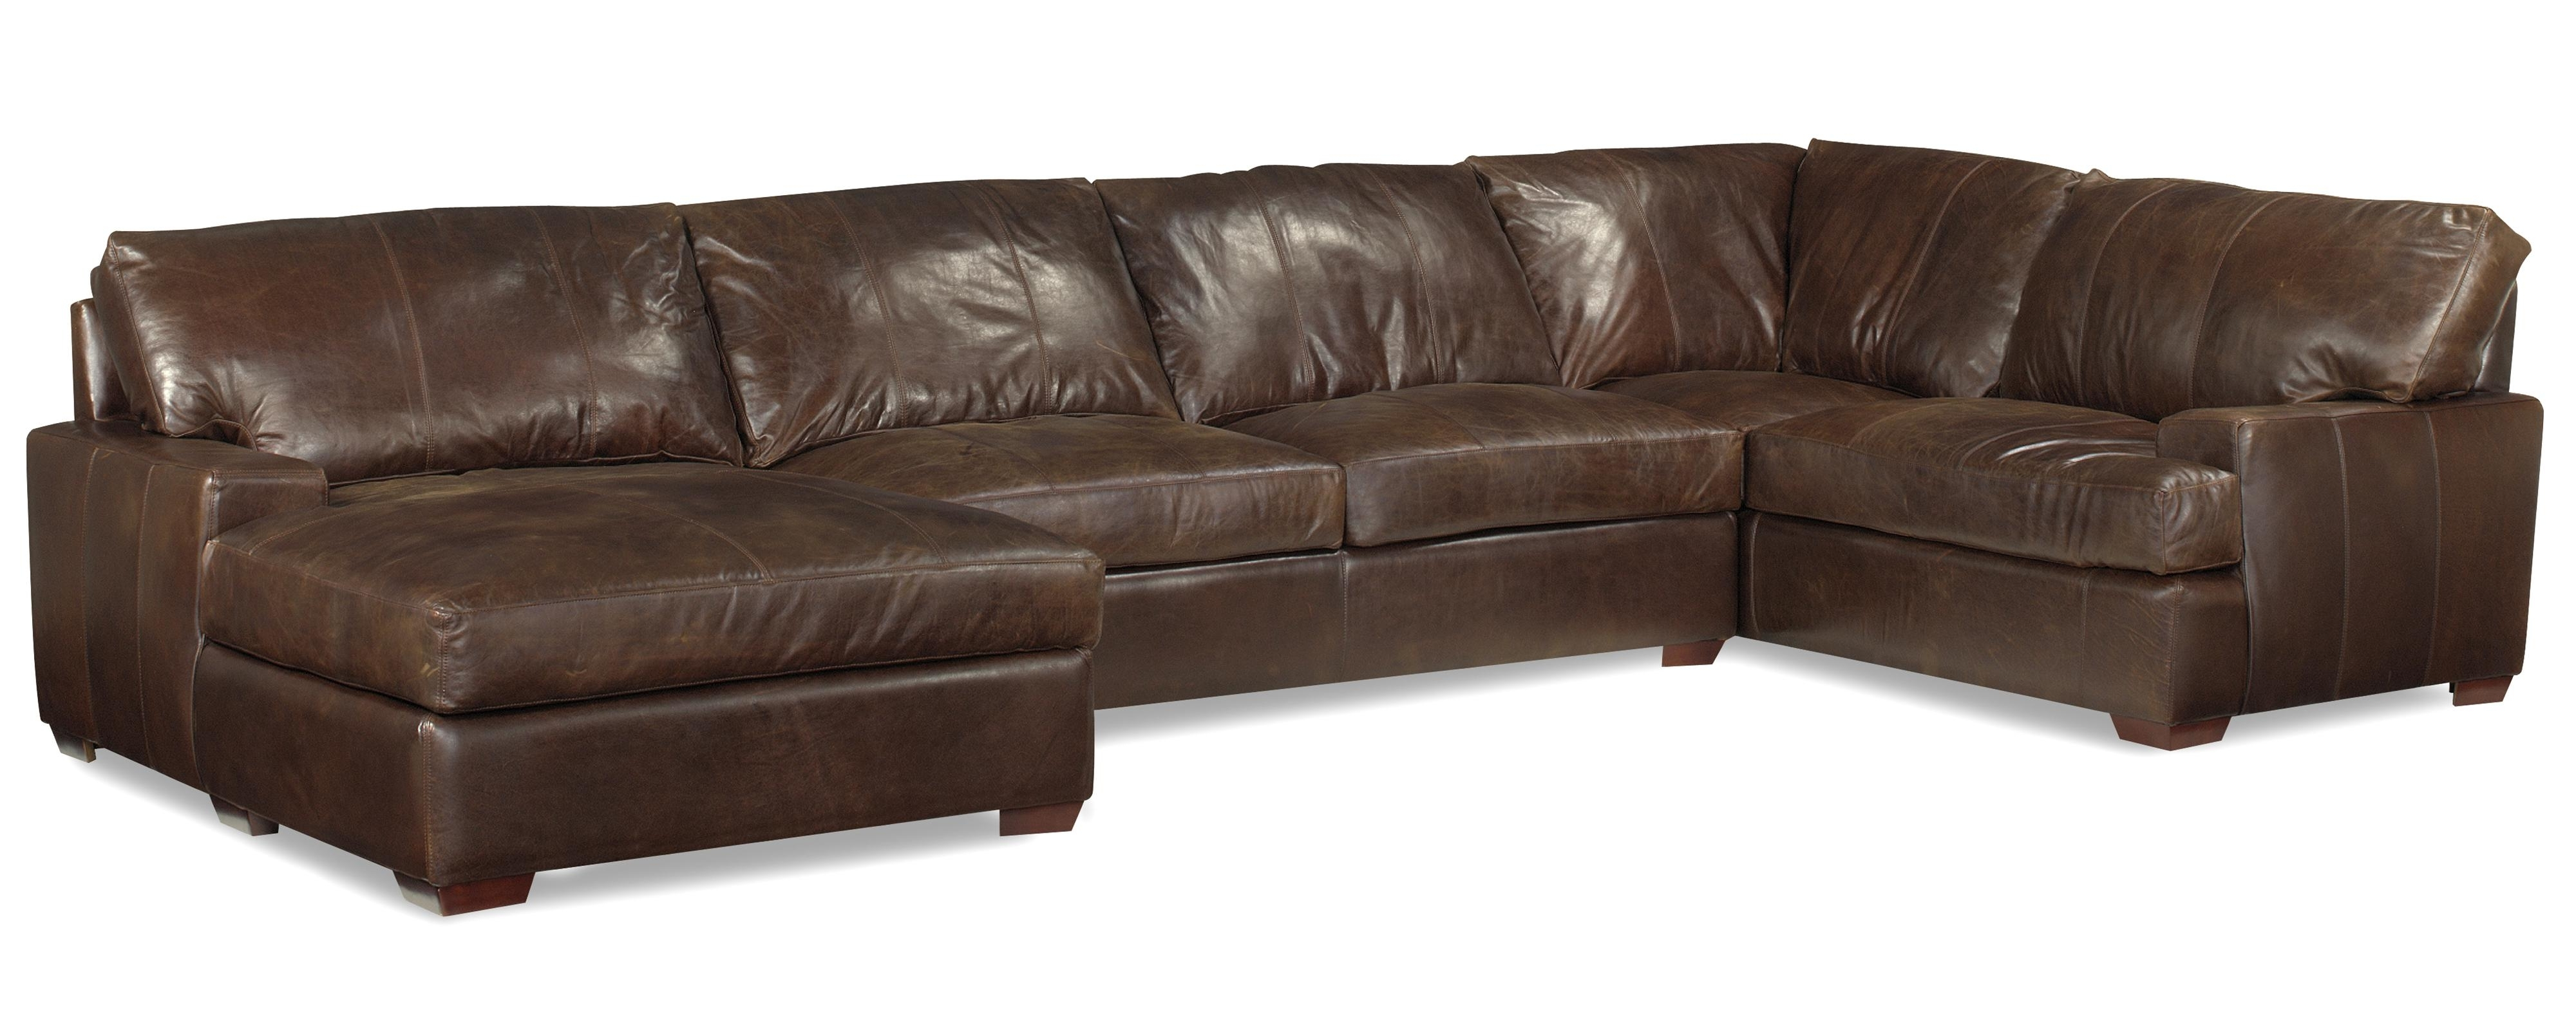 Sectional Sofa Chaises Within Most Recently Released Usa Premium Leather 3635 Track Arm Sofa Chaise Sectional W/ Block (View 12 of 15)